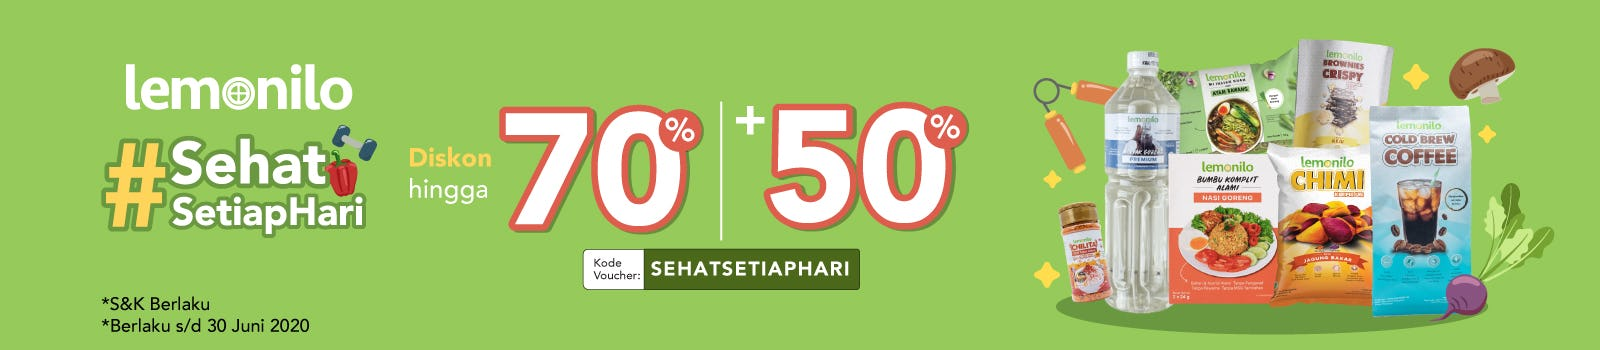 #SehatSetiapHari Up To 70% + 50% OFF